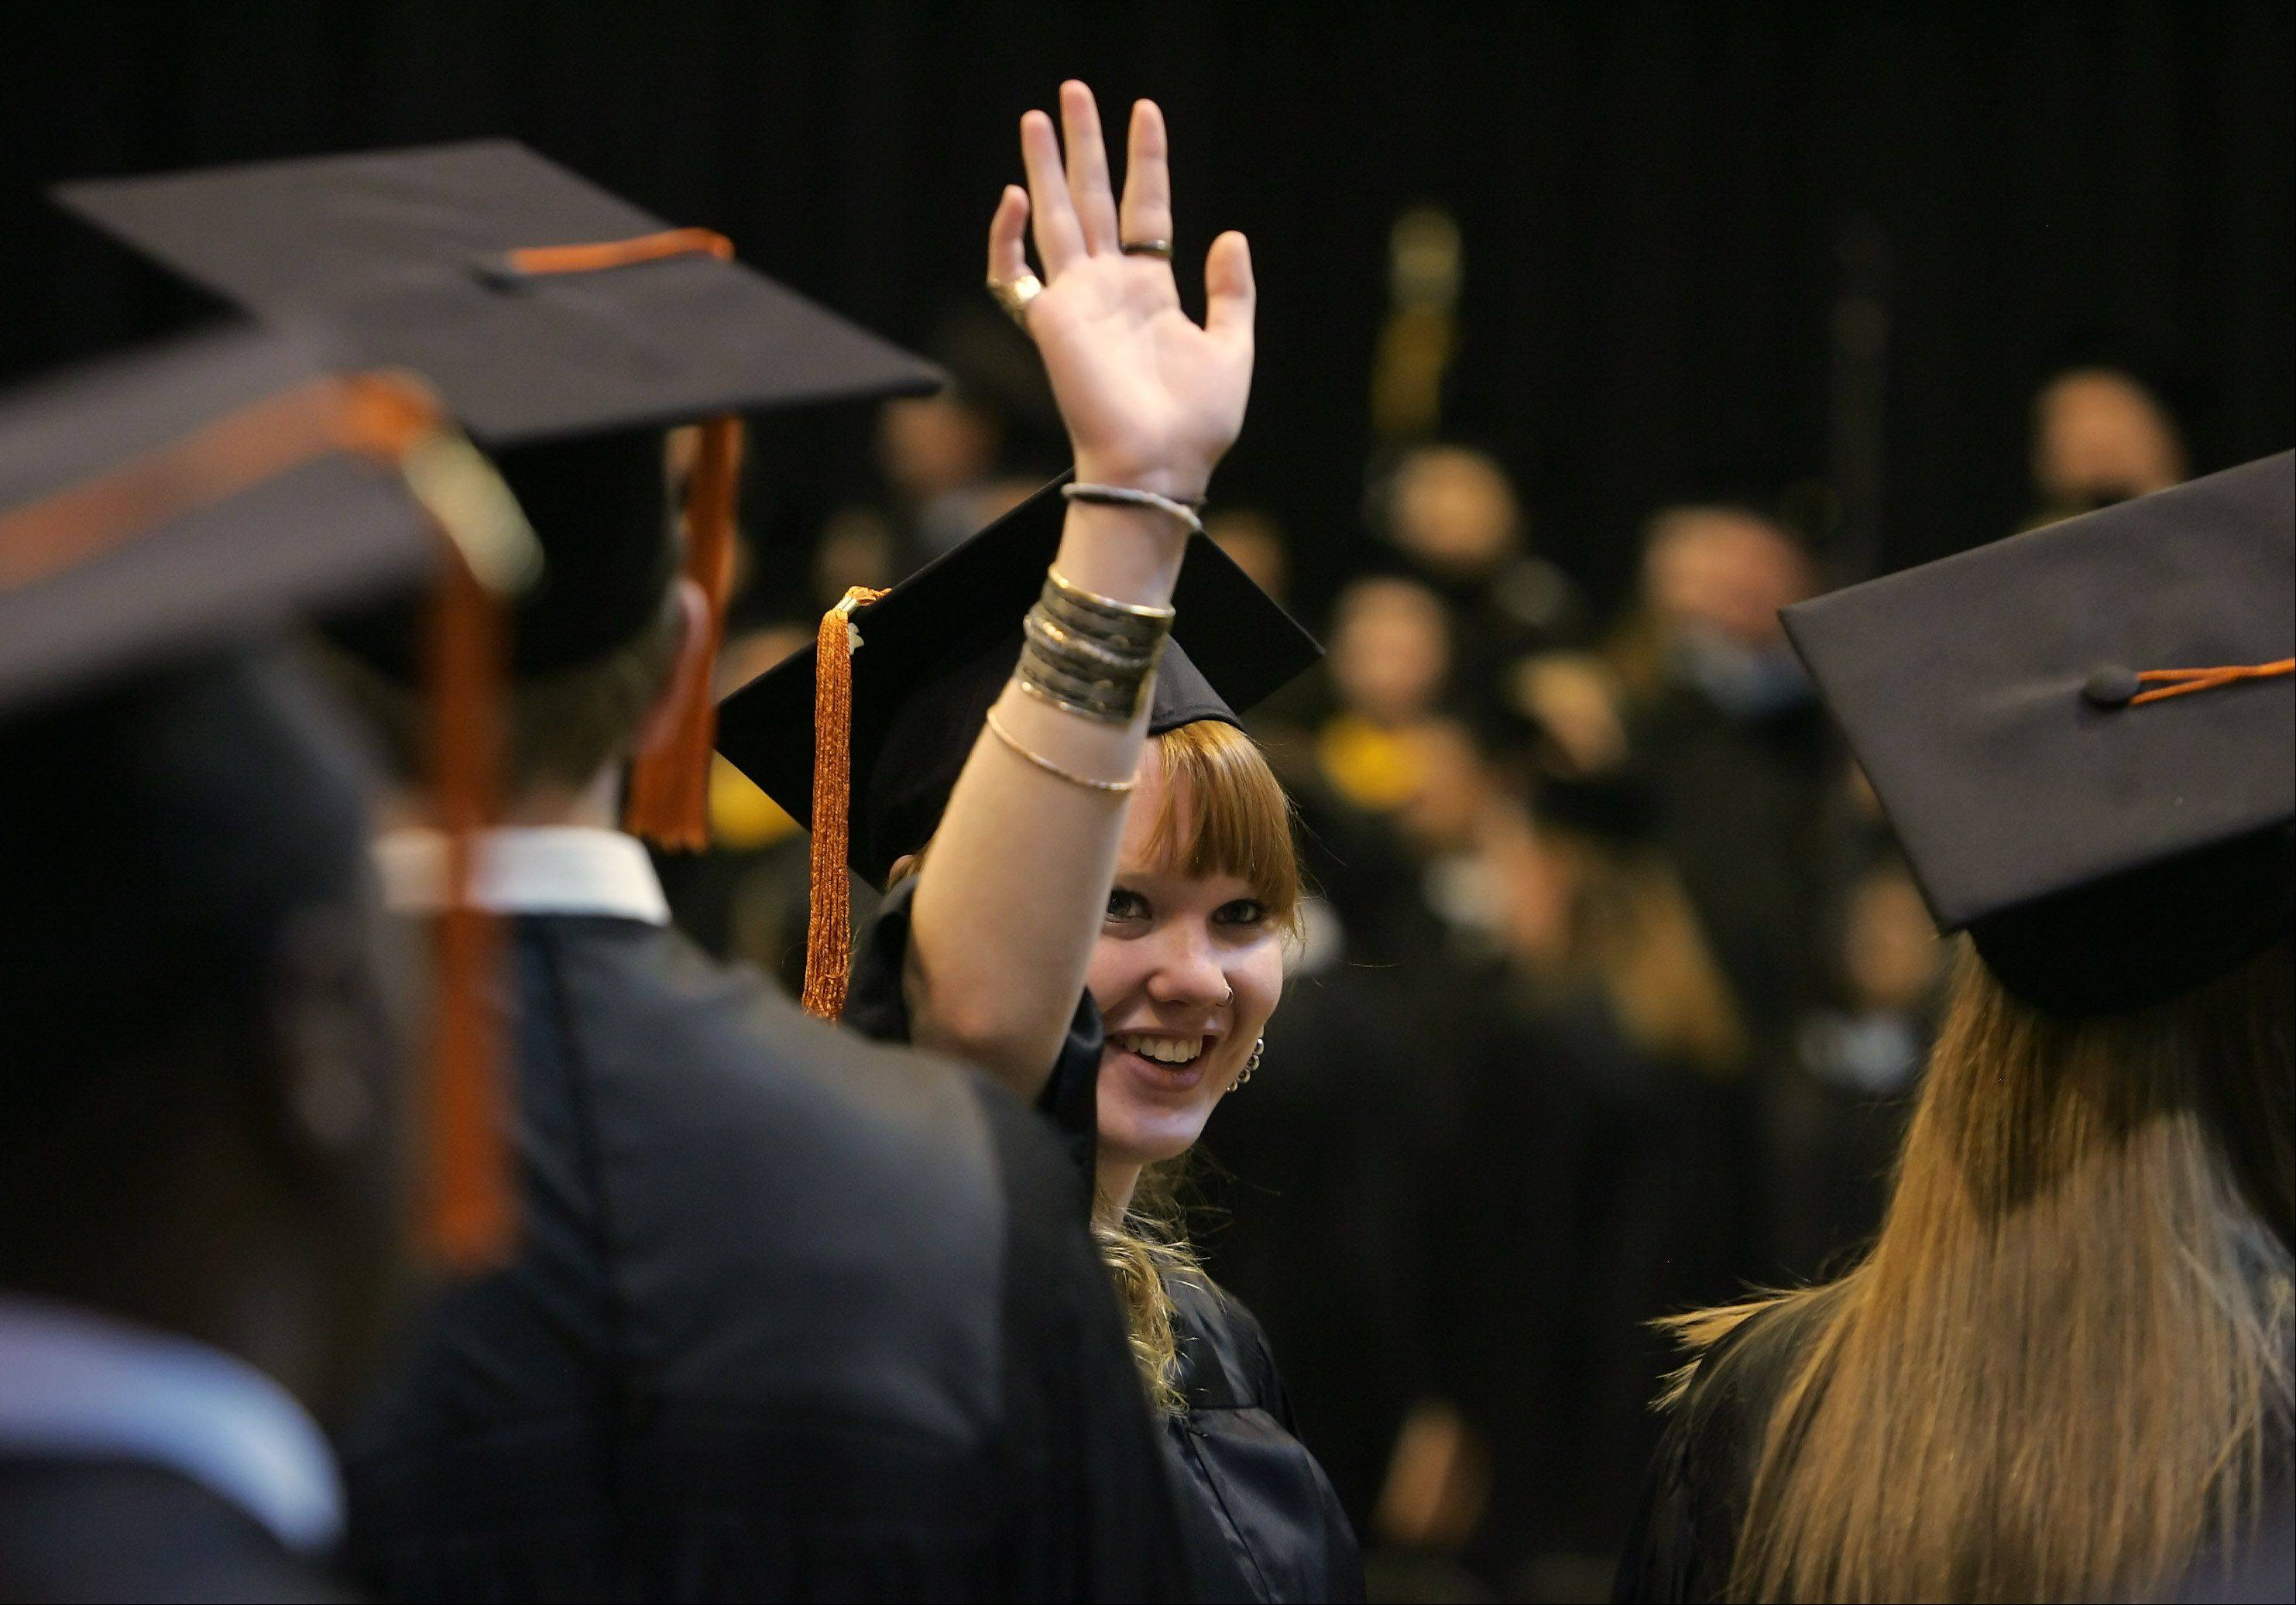 Constance Heuer waves to family members during the John Hersey High School graduation on Sunday at the school in Arlington Heights. The school was celebrating its 43rd commencement exercises